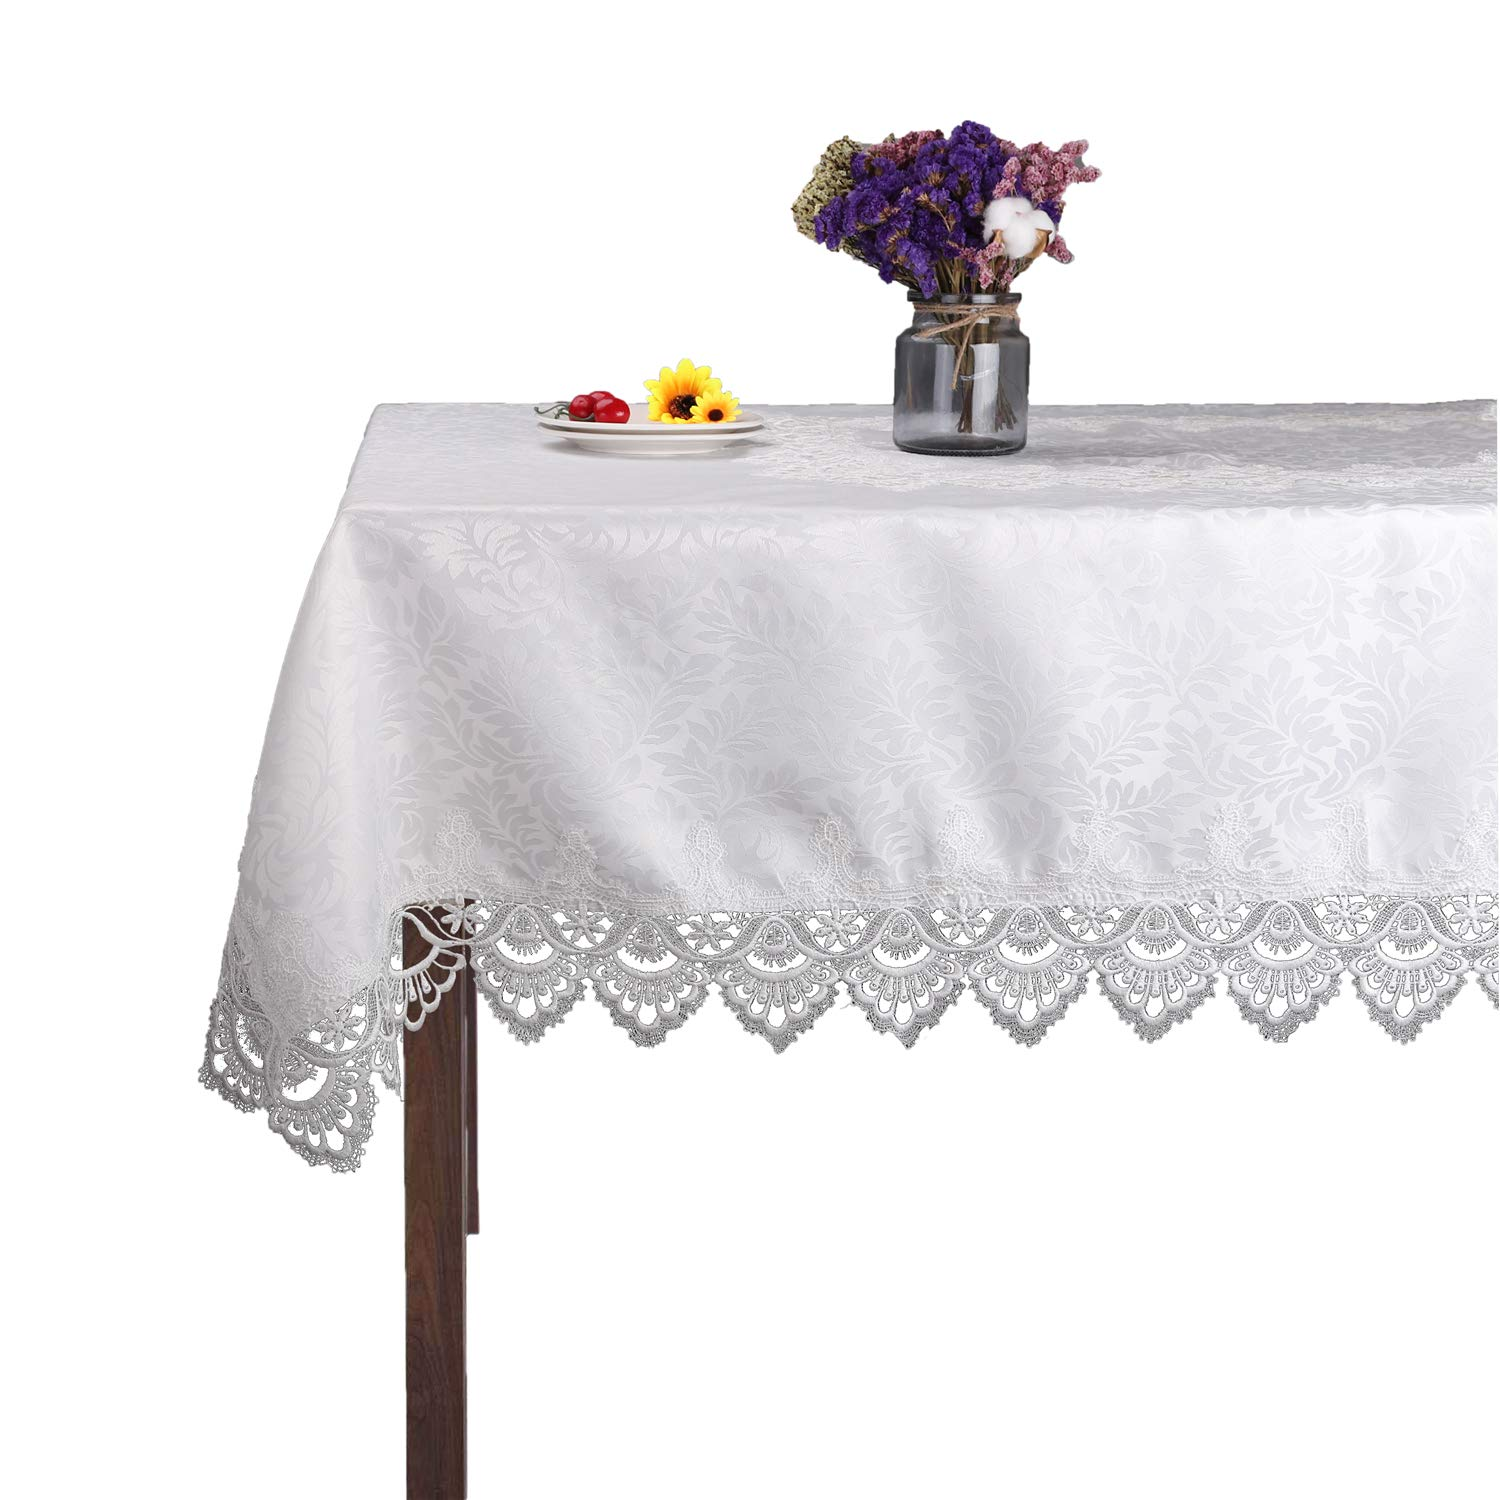 White lace floral table runner for wedding party home Homes hold tablecloths